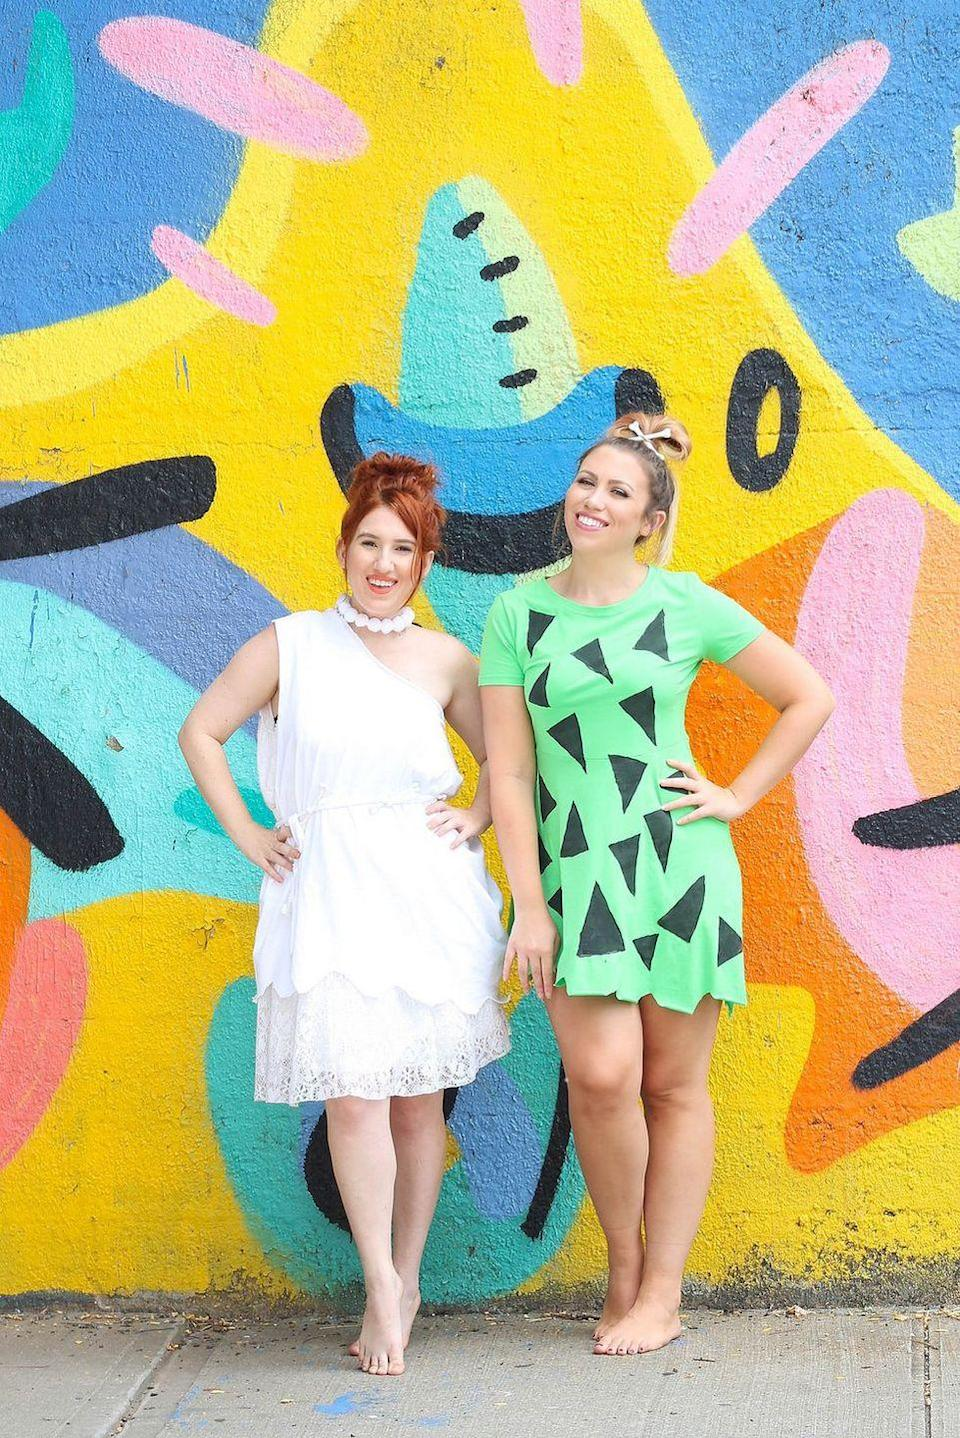 """<p>Wilma and Pebbles are actually mother and daughter, but who says moms can't be besties with their kids? </p><p><em><a href=""""http://livingaftermidnite.com/2017/09/"""" rel=""""nofollow noopener"""" target=""""_blank"""" data-ylk=""""slk:Get the tutorial at Living After Midnite >>"""" class=""""link rapid-noclick-resp"""">Get the tutorial at Living After Midnite >></a><br></em></p>"""